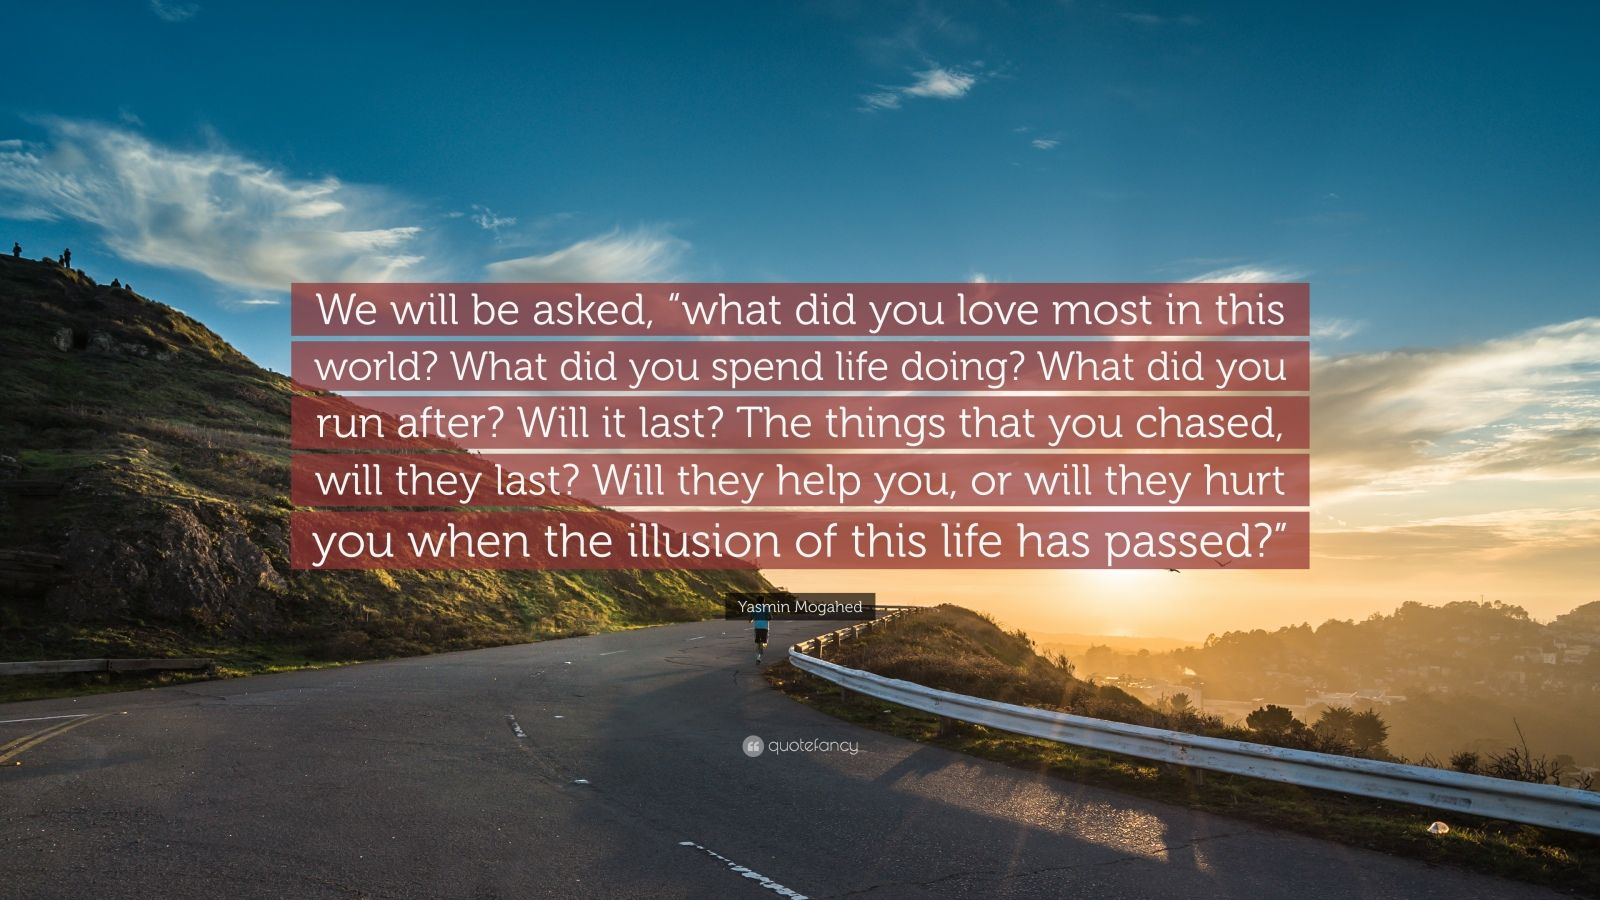 """Yasmin Mogahed Quote: """"We will be asked, """"what did you love most in this world? What did you spend life doing? What did you run after? Will it last? The things that you chased, will they last? Will they help you, or will they hurt you when the illusion of this life has passed?"""""""""""